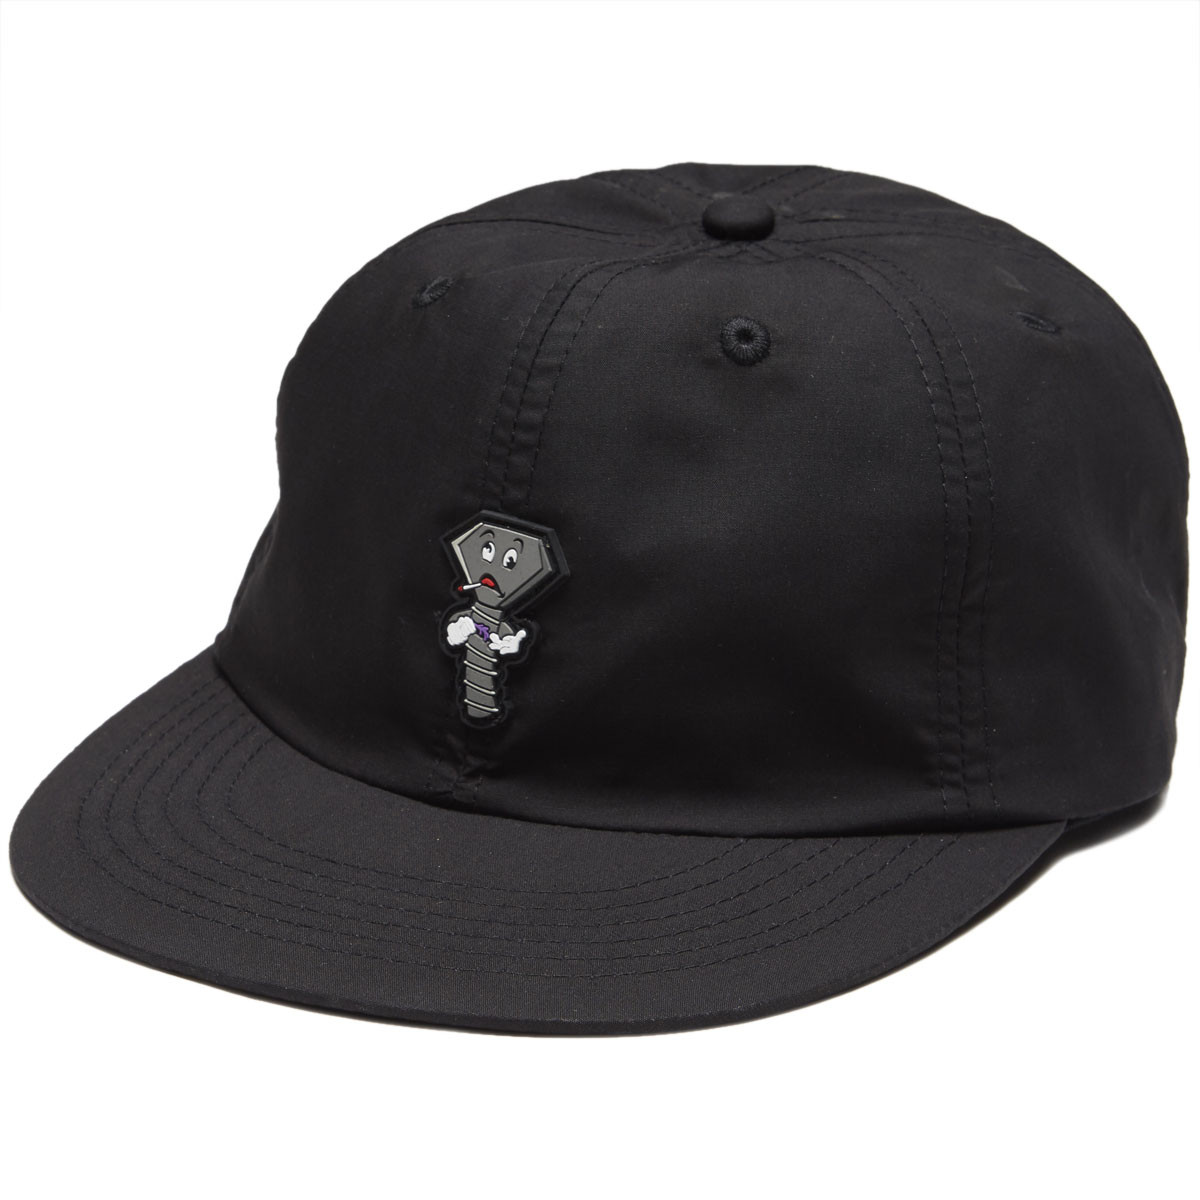 c6a6c81dcb385 ... czech diamond supply co. screwed up unstructured 6 panel clipback hat  black ed094 19e6f